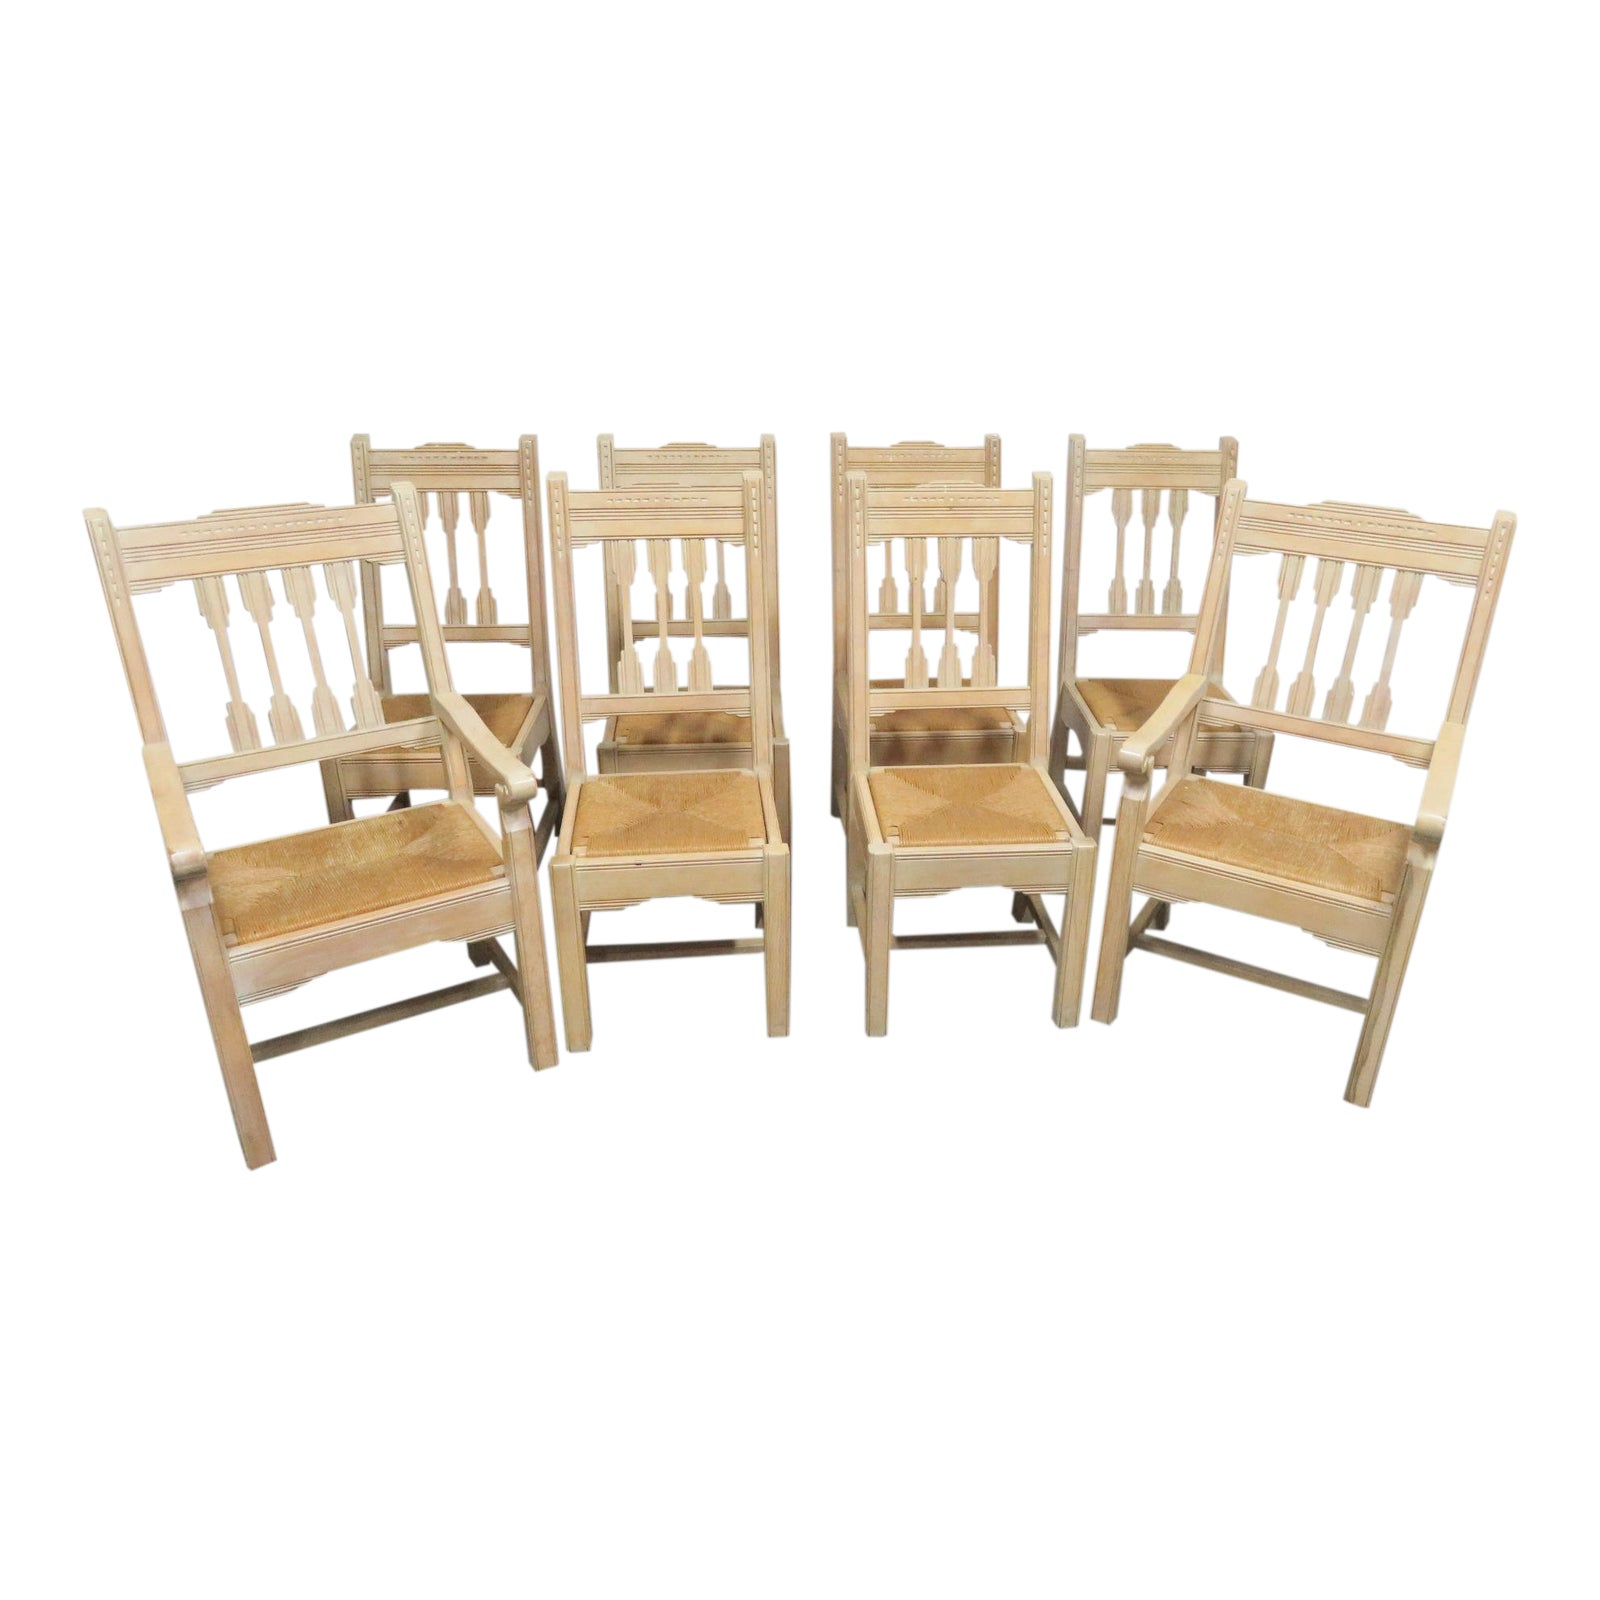 South Western Style Pine Carved Rush Seat Chairs Set Of 8 Chairish